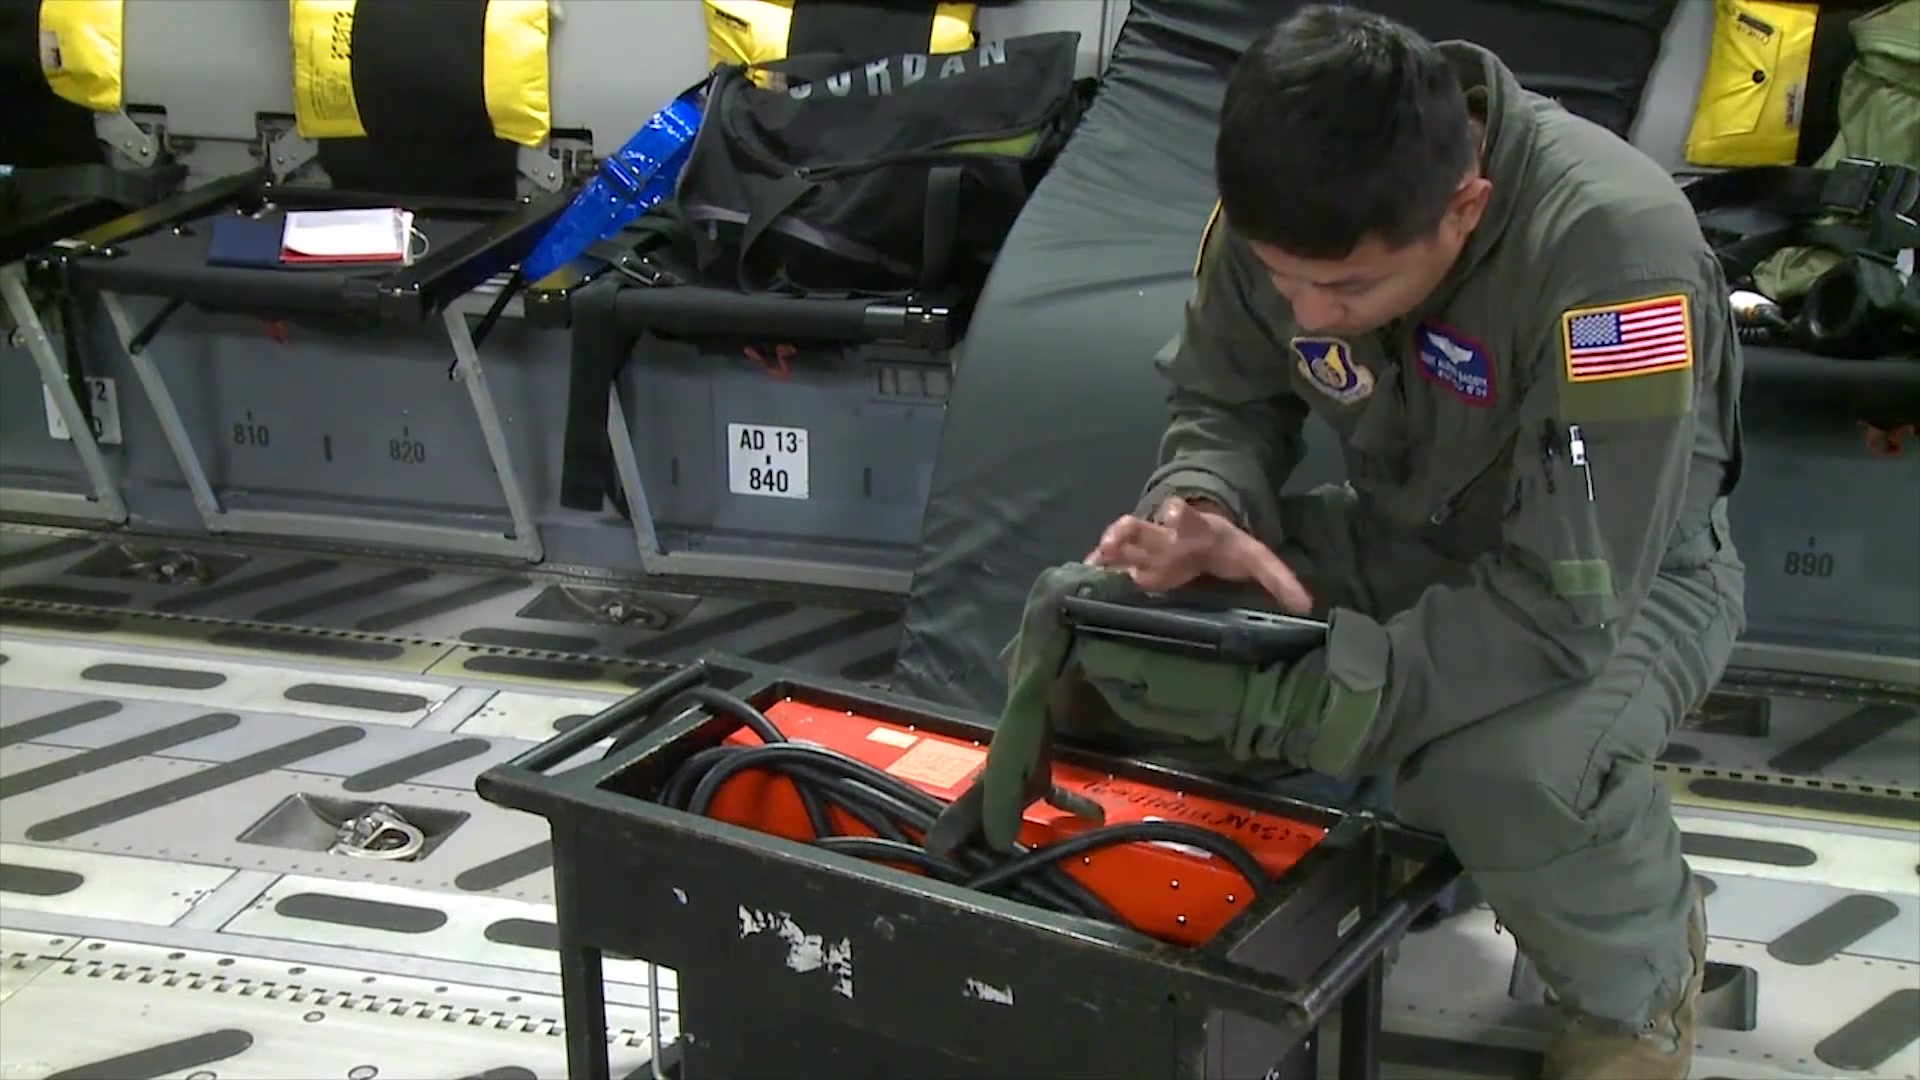 Critical Care Air Transport Teams provide specialized care to wounded warriors, that are in critical condition, to ensure they're safely transported to hospitals. 